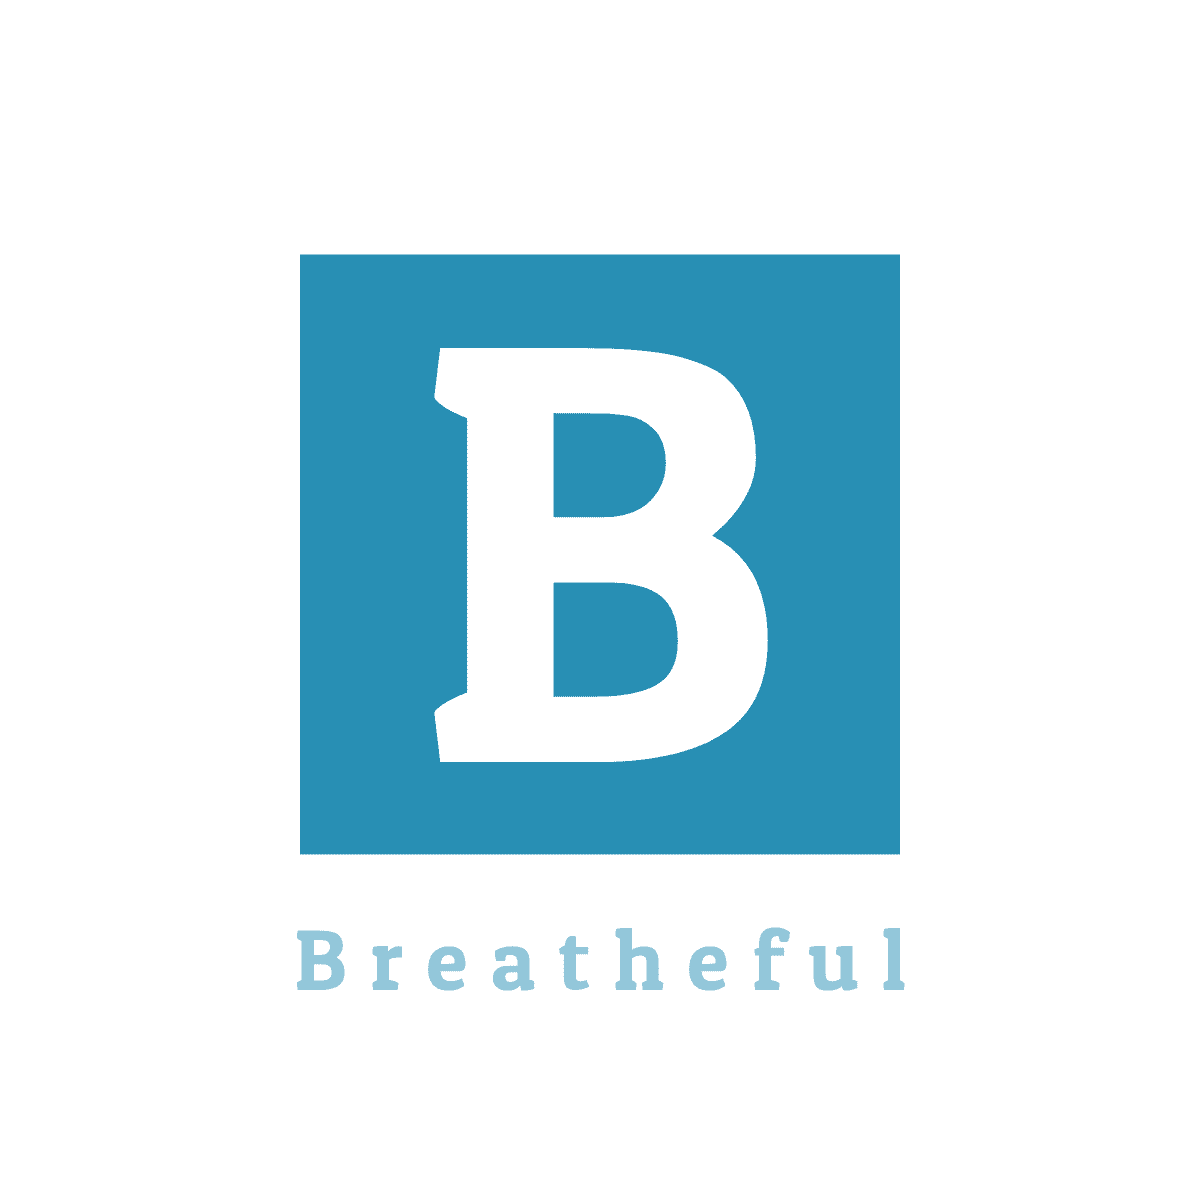 Breatheful